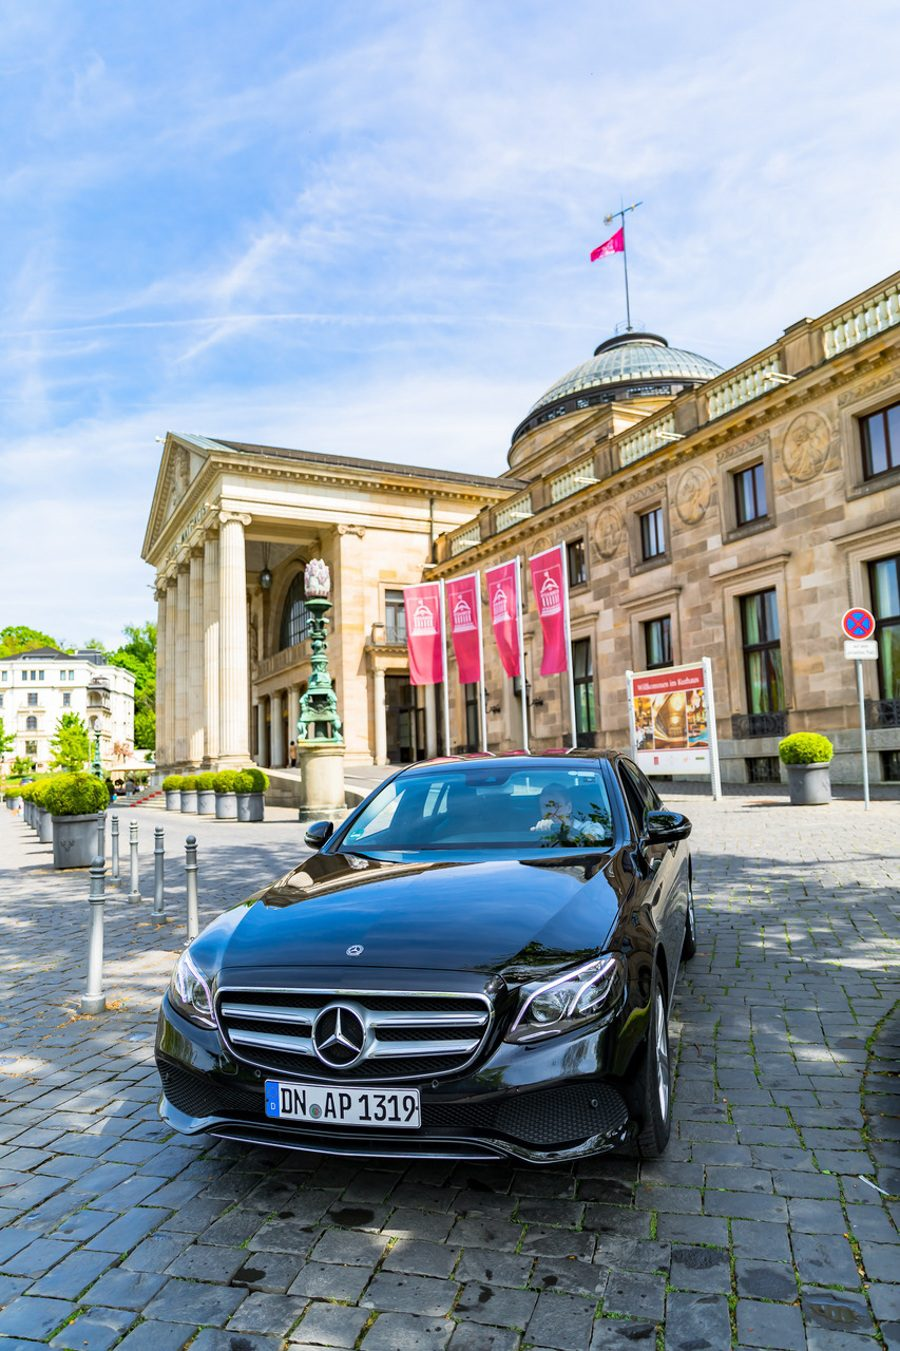 Why taking a road trip can be the best way to learn while traveling, as explained by travel blogger JQ Louise, who roadtripped through Germany's Frankfurt-Rhine-Main region. This European gem is full of food, castles and sight seeing, and JQ learned about Germany like a local. Pictured: The rental car at the Kurhaus in Wiesbaden.